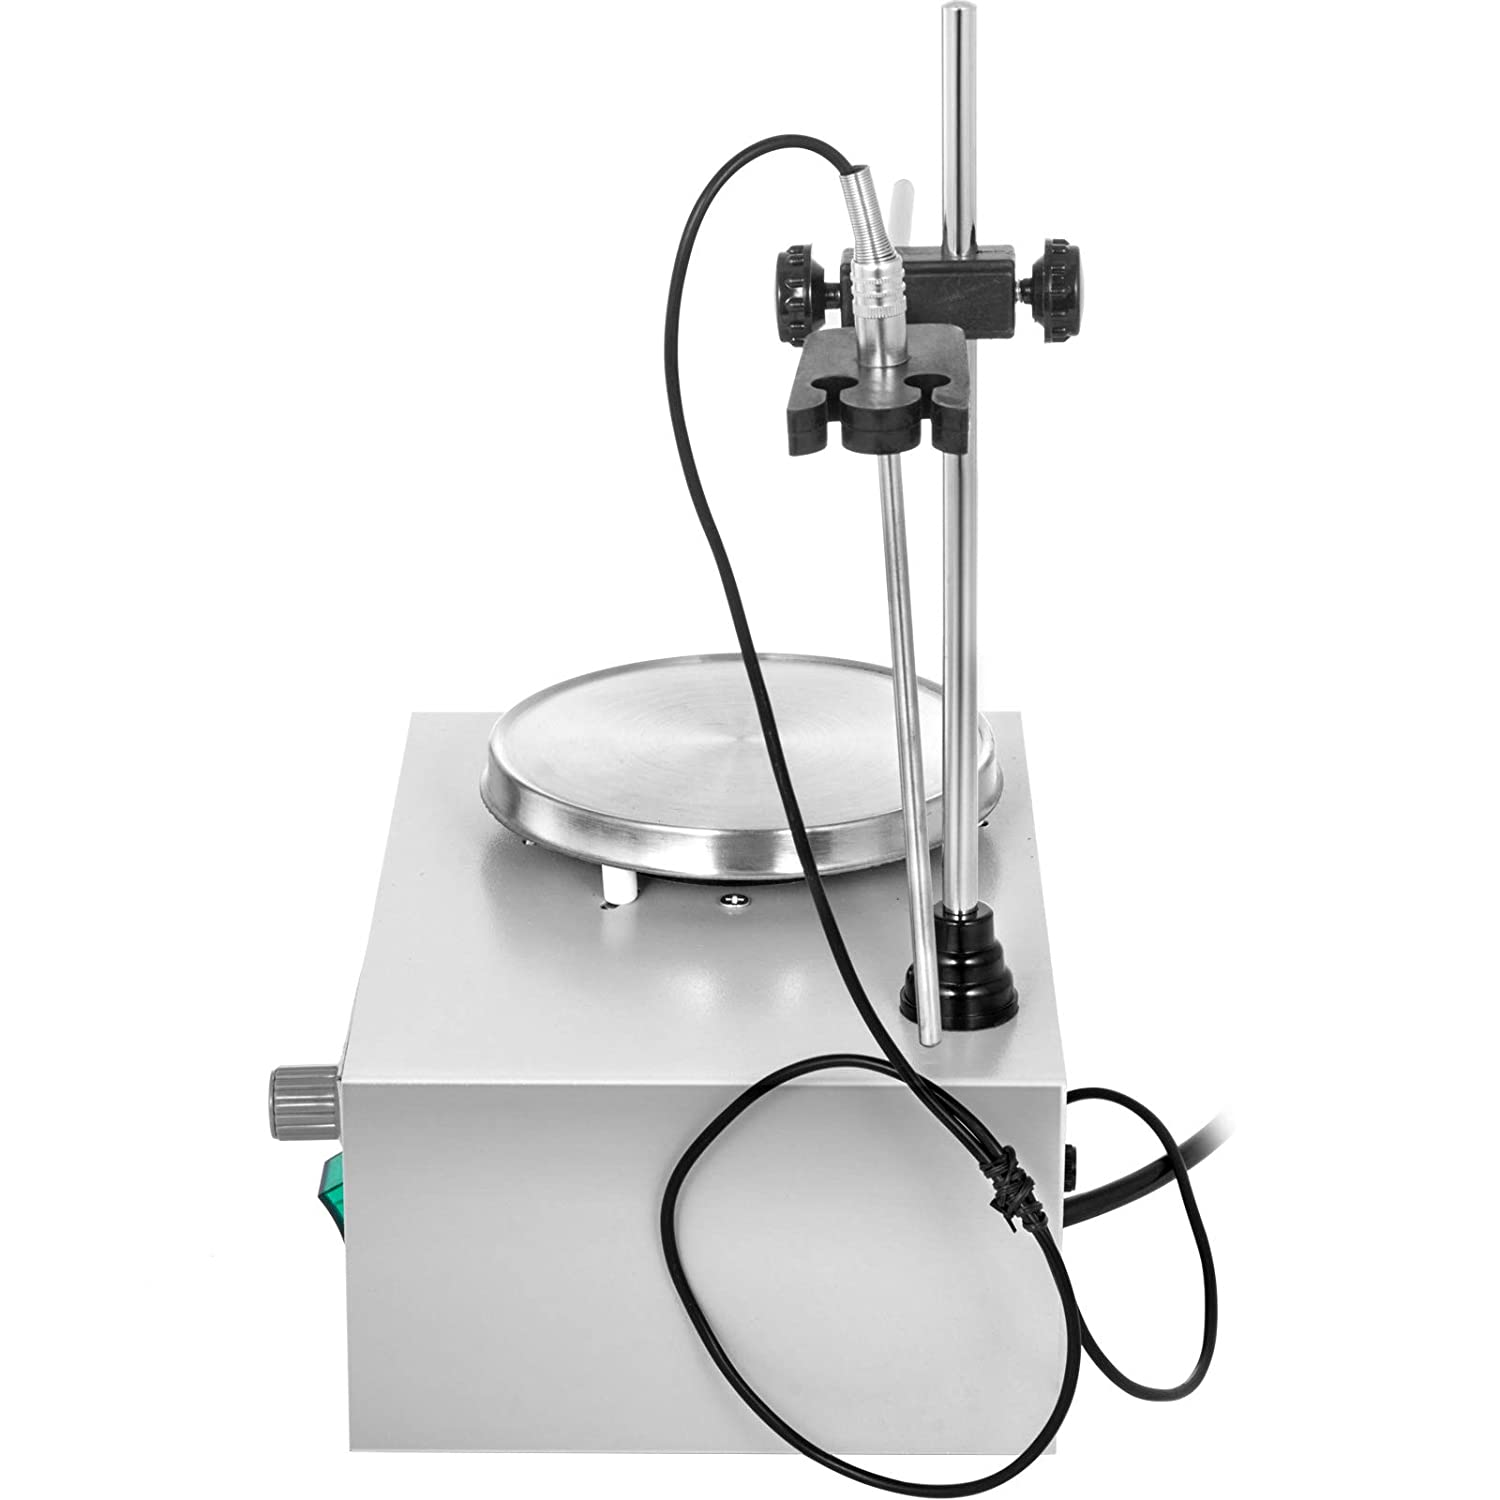 VEVOR 85-2 Magnetic Stirrer Laboratory Magnetic Stirrer Hotplate 1000ml Mixing Capacity with Heating Plate Heating Mixer Digital Display